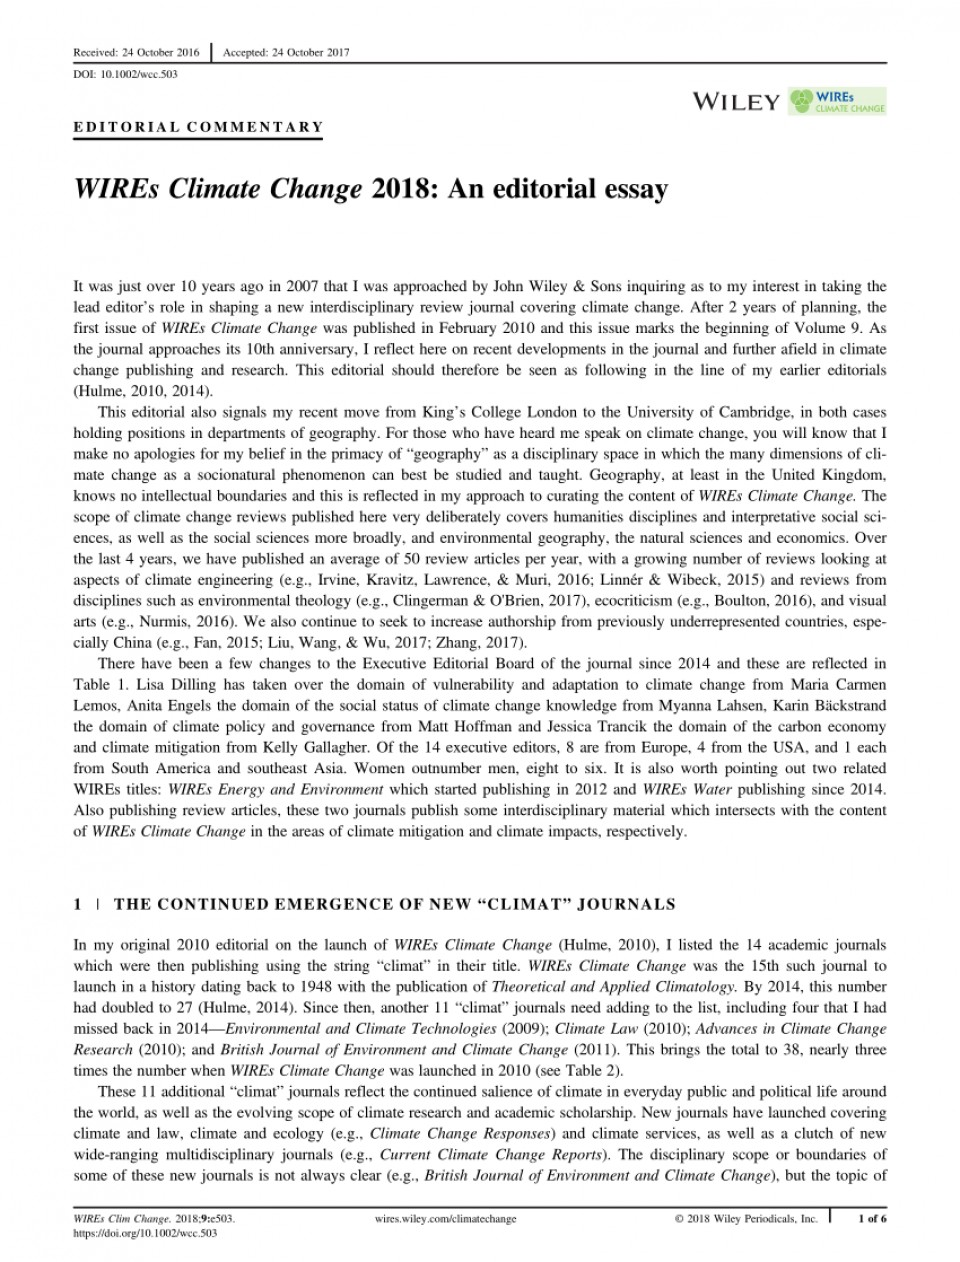 005 Essay Example Climate Change Awesome High School In English 150 Words Kenya Art And Competition 2018 960